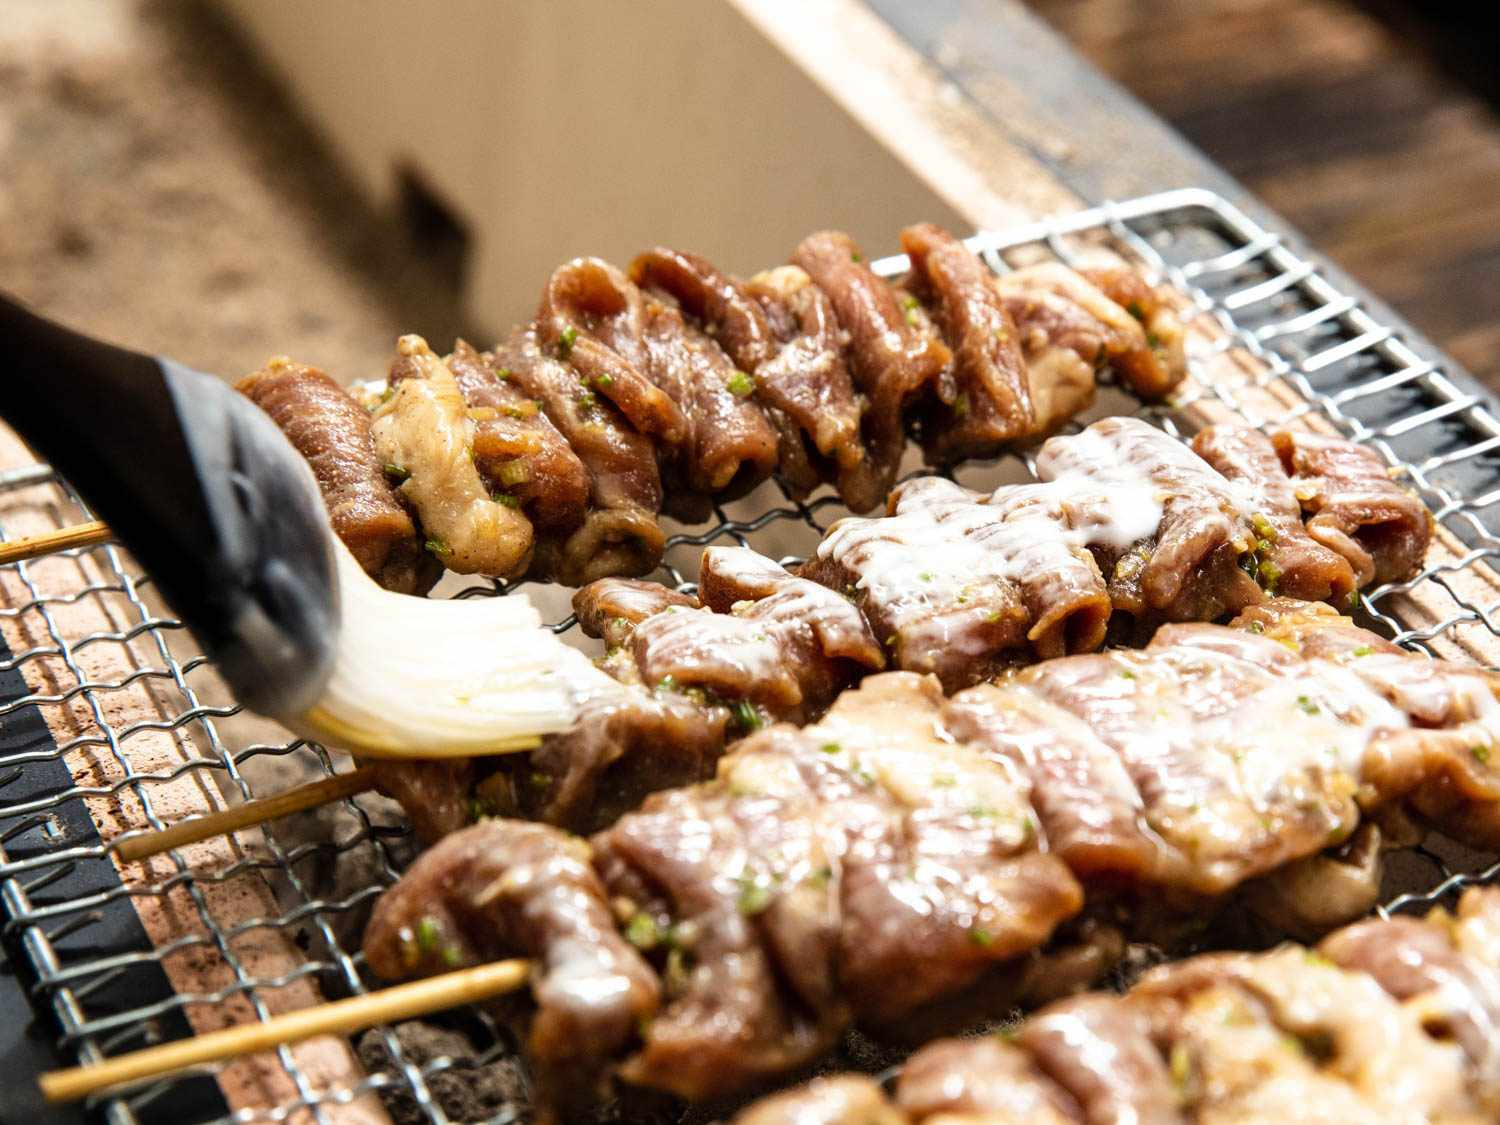 Closeup of Thai pork skewers being brushed with a pastry brush while resting on a wire mesh rack, suspended over coals